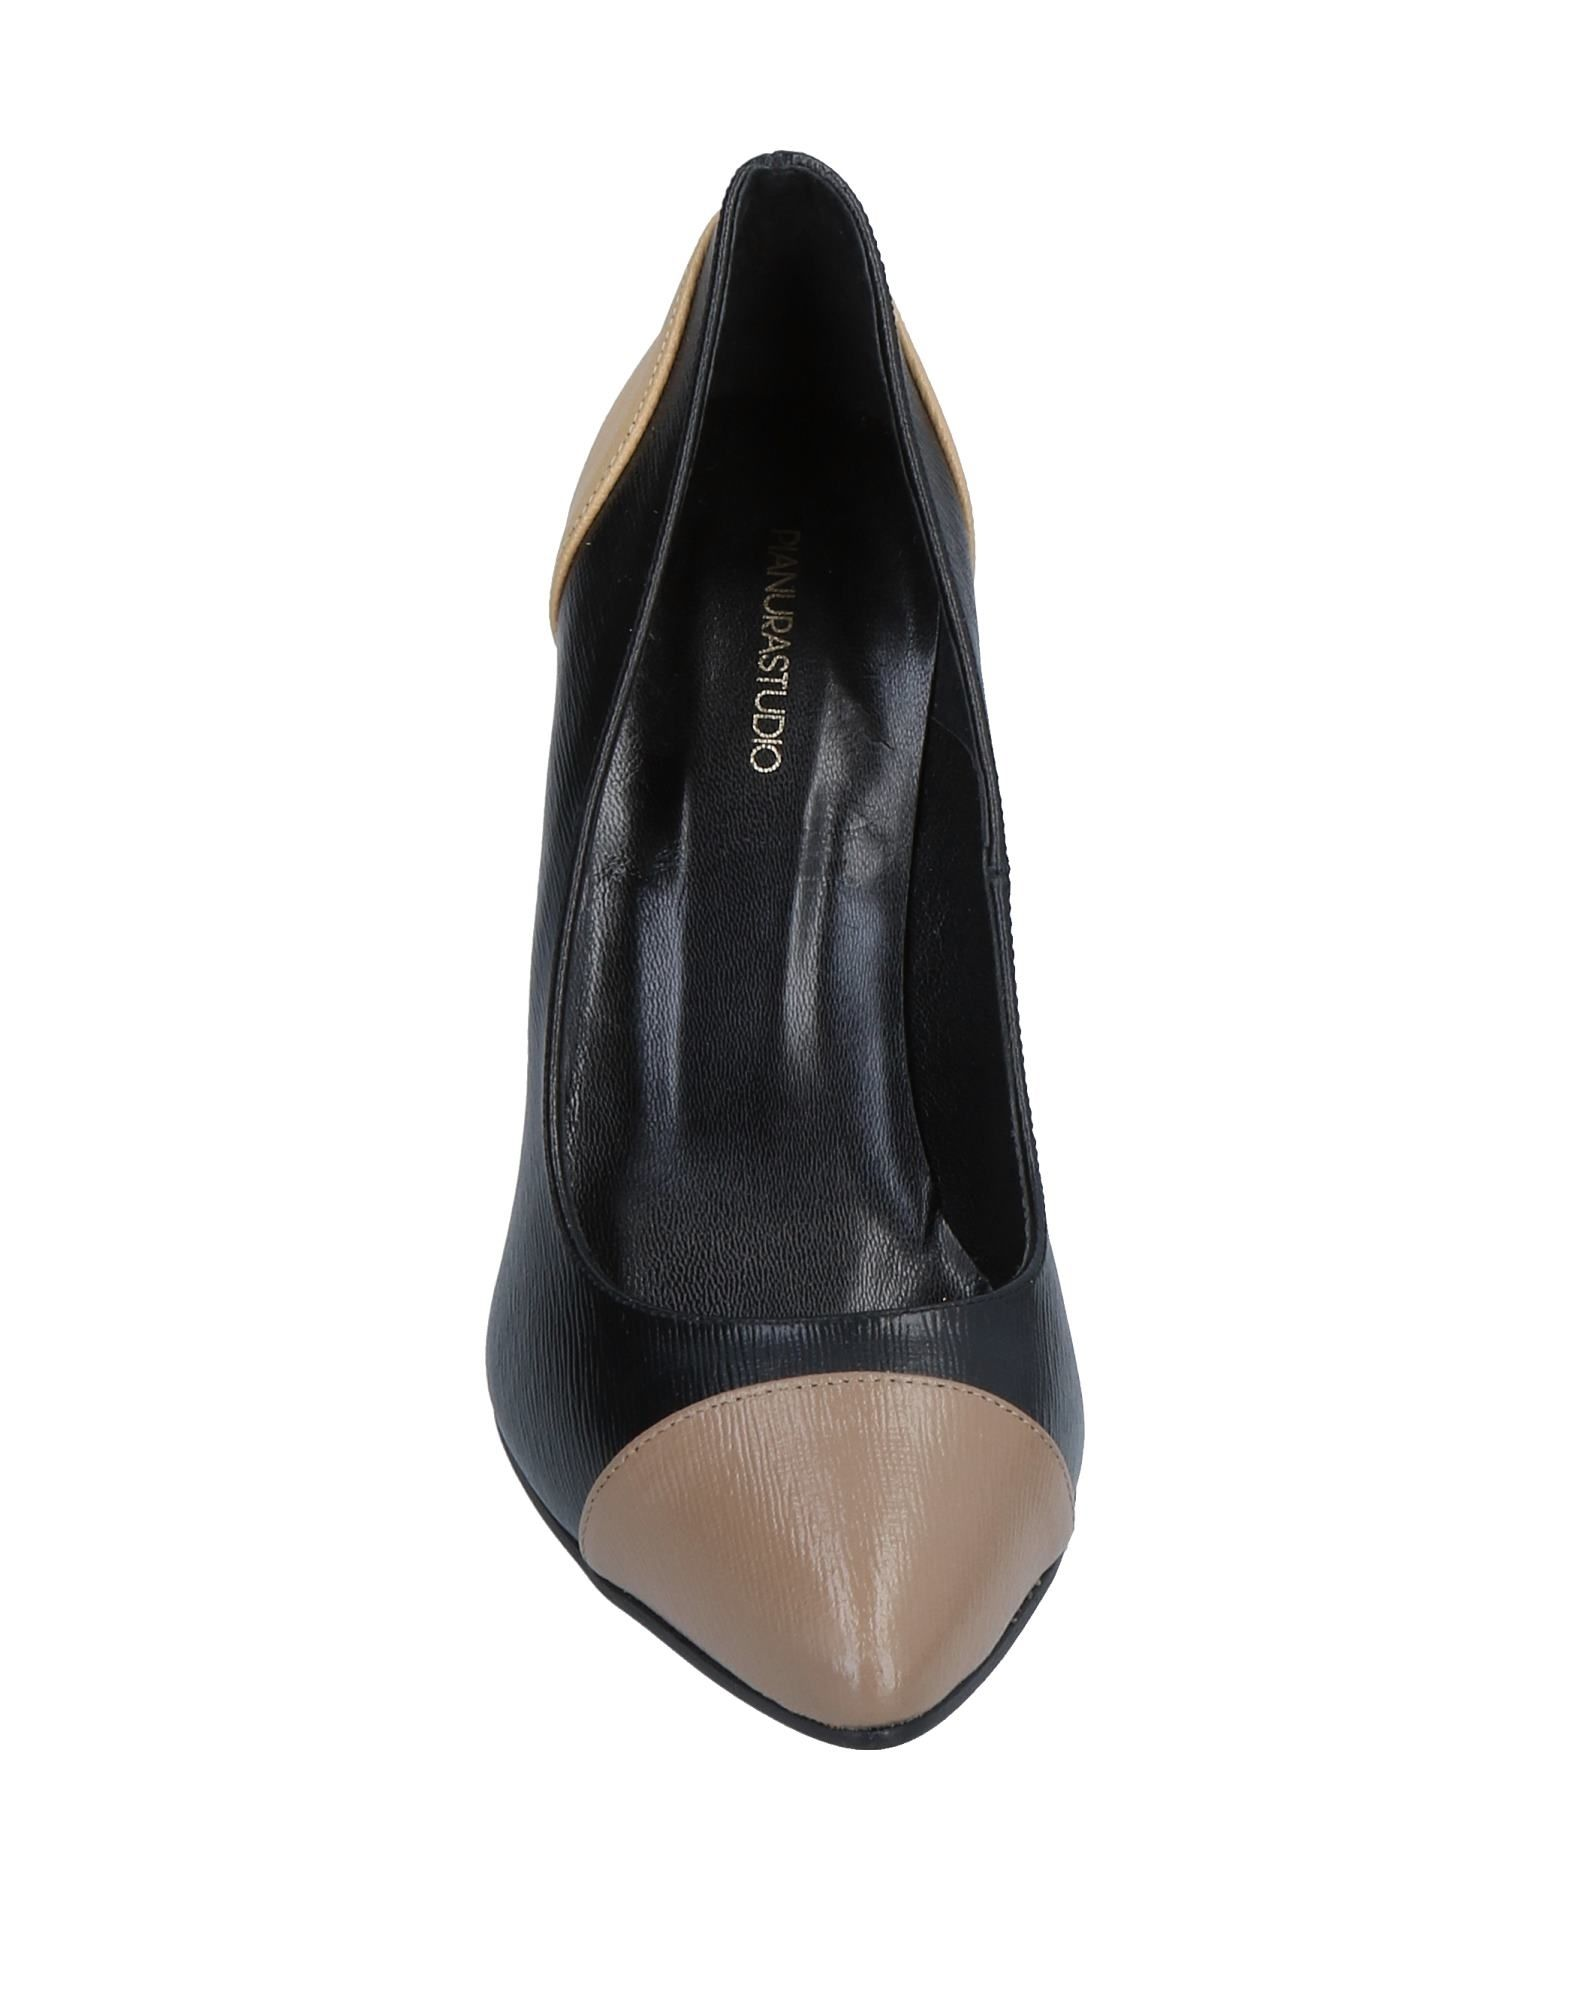 Stilvolle billige  Schuhe Pianurastudio Pumps Damen  billige 11567444UG ccfe5c